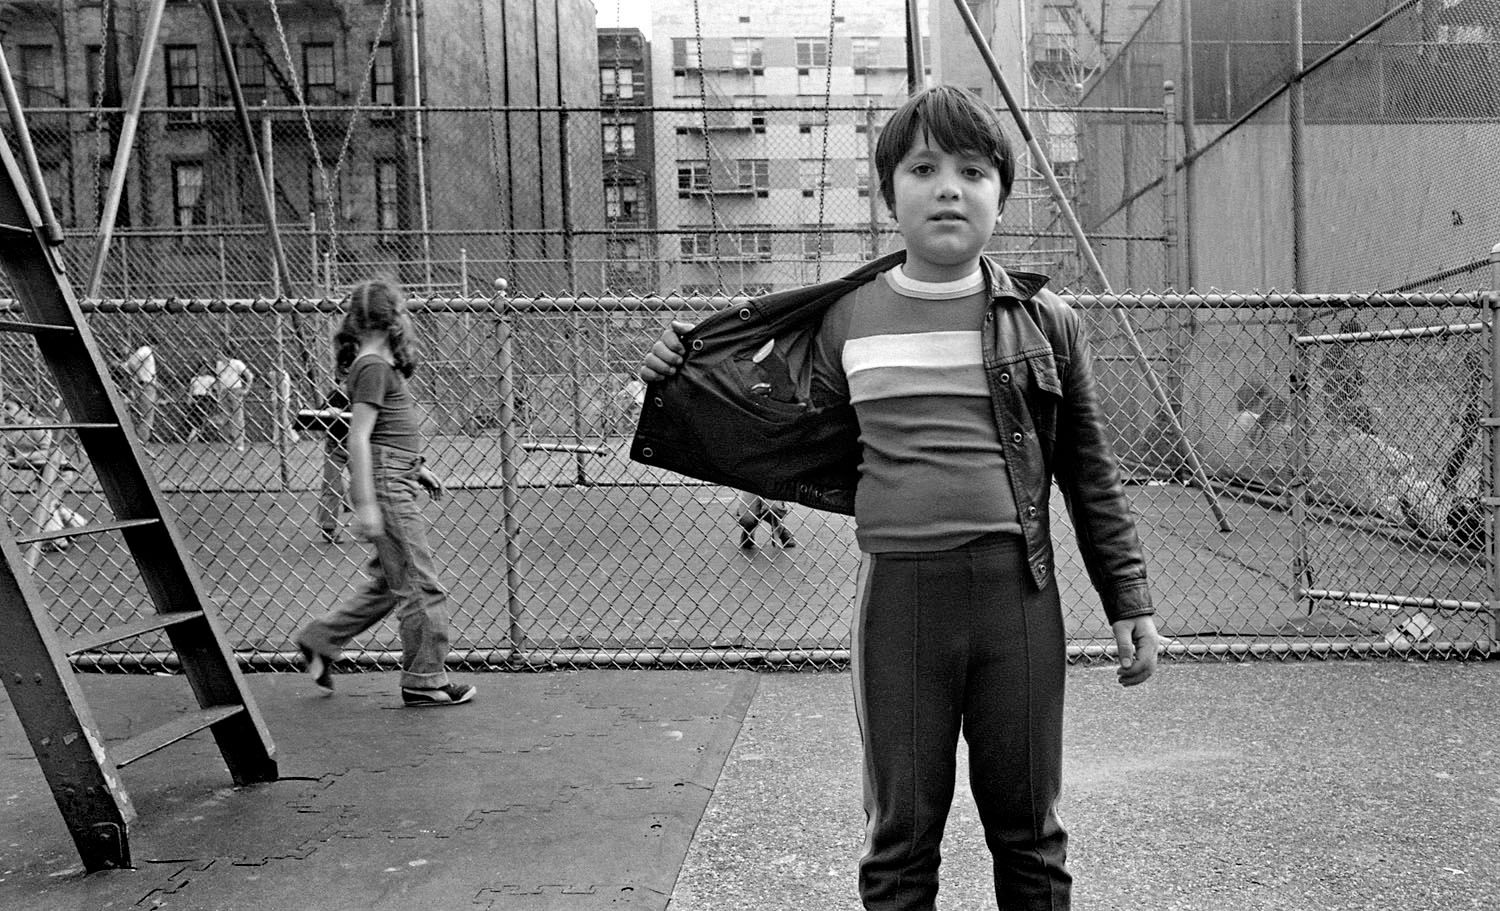 Boy in Playground with Gun